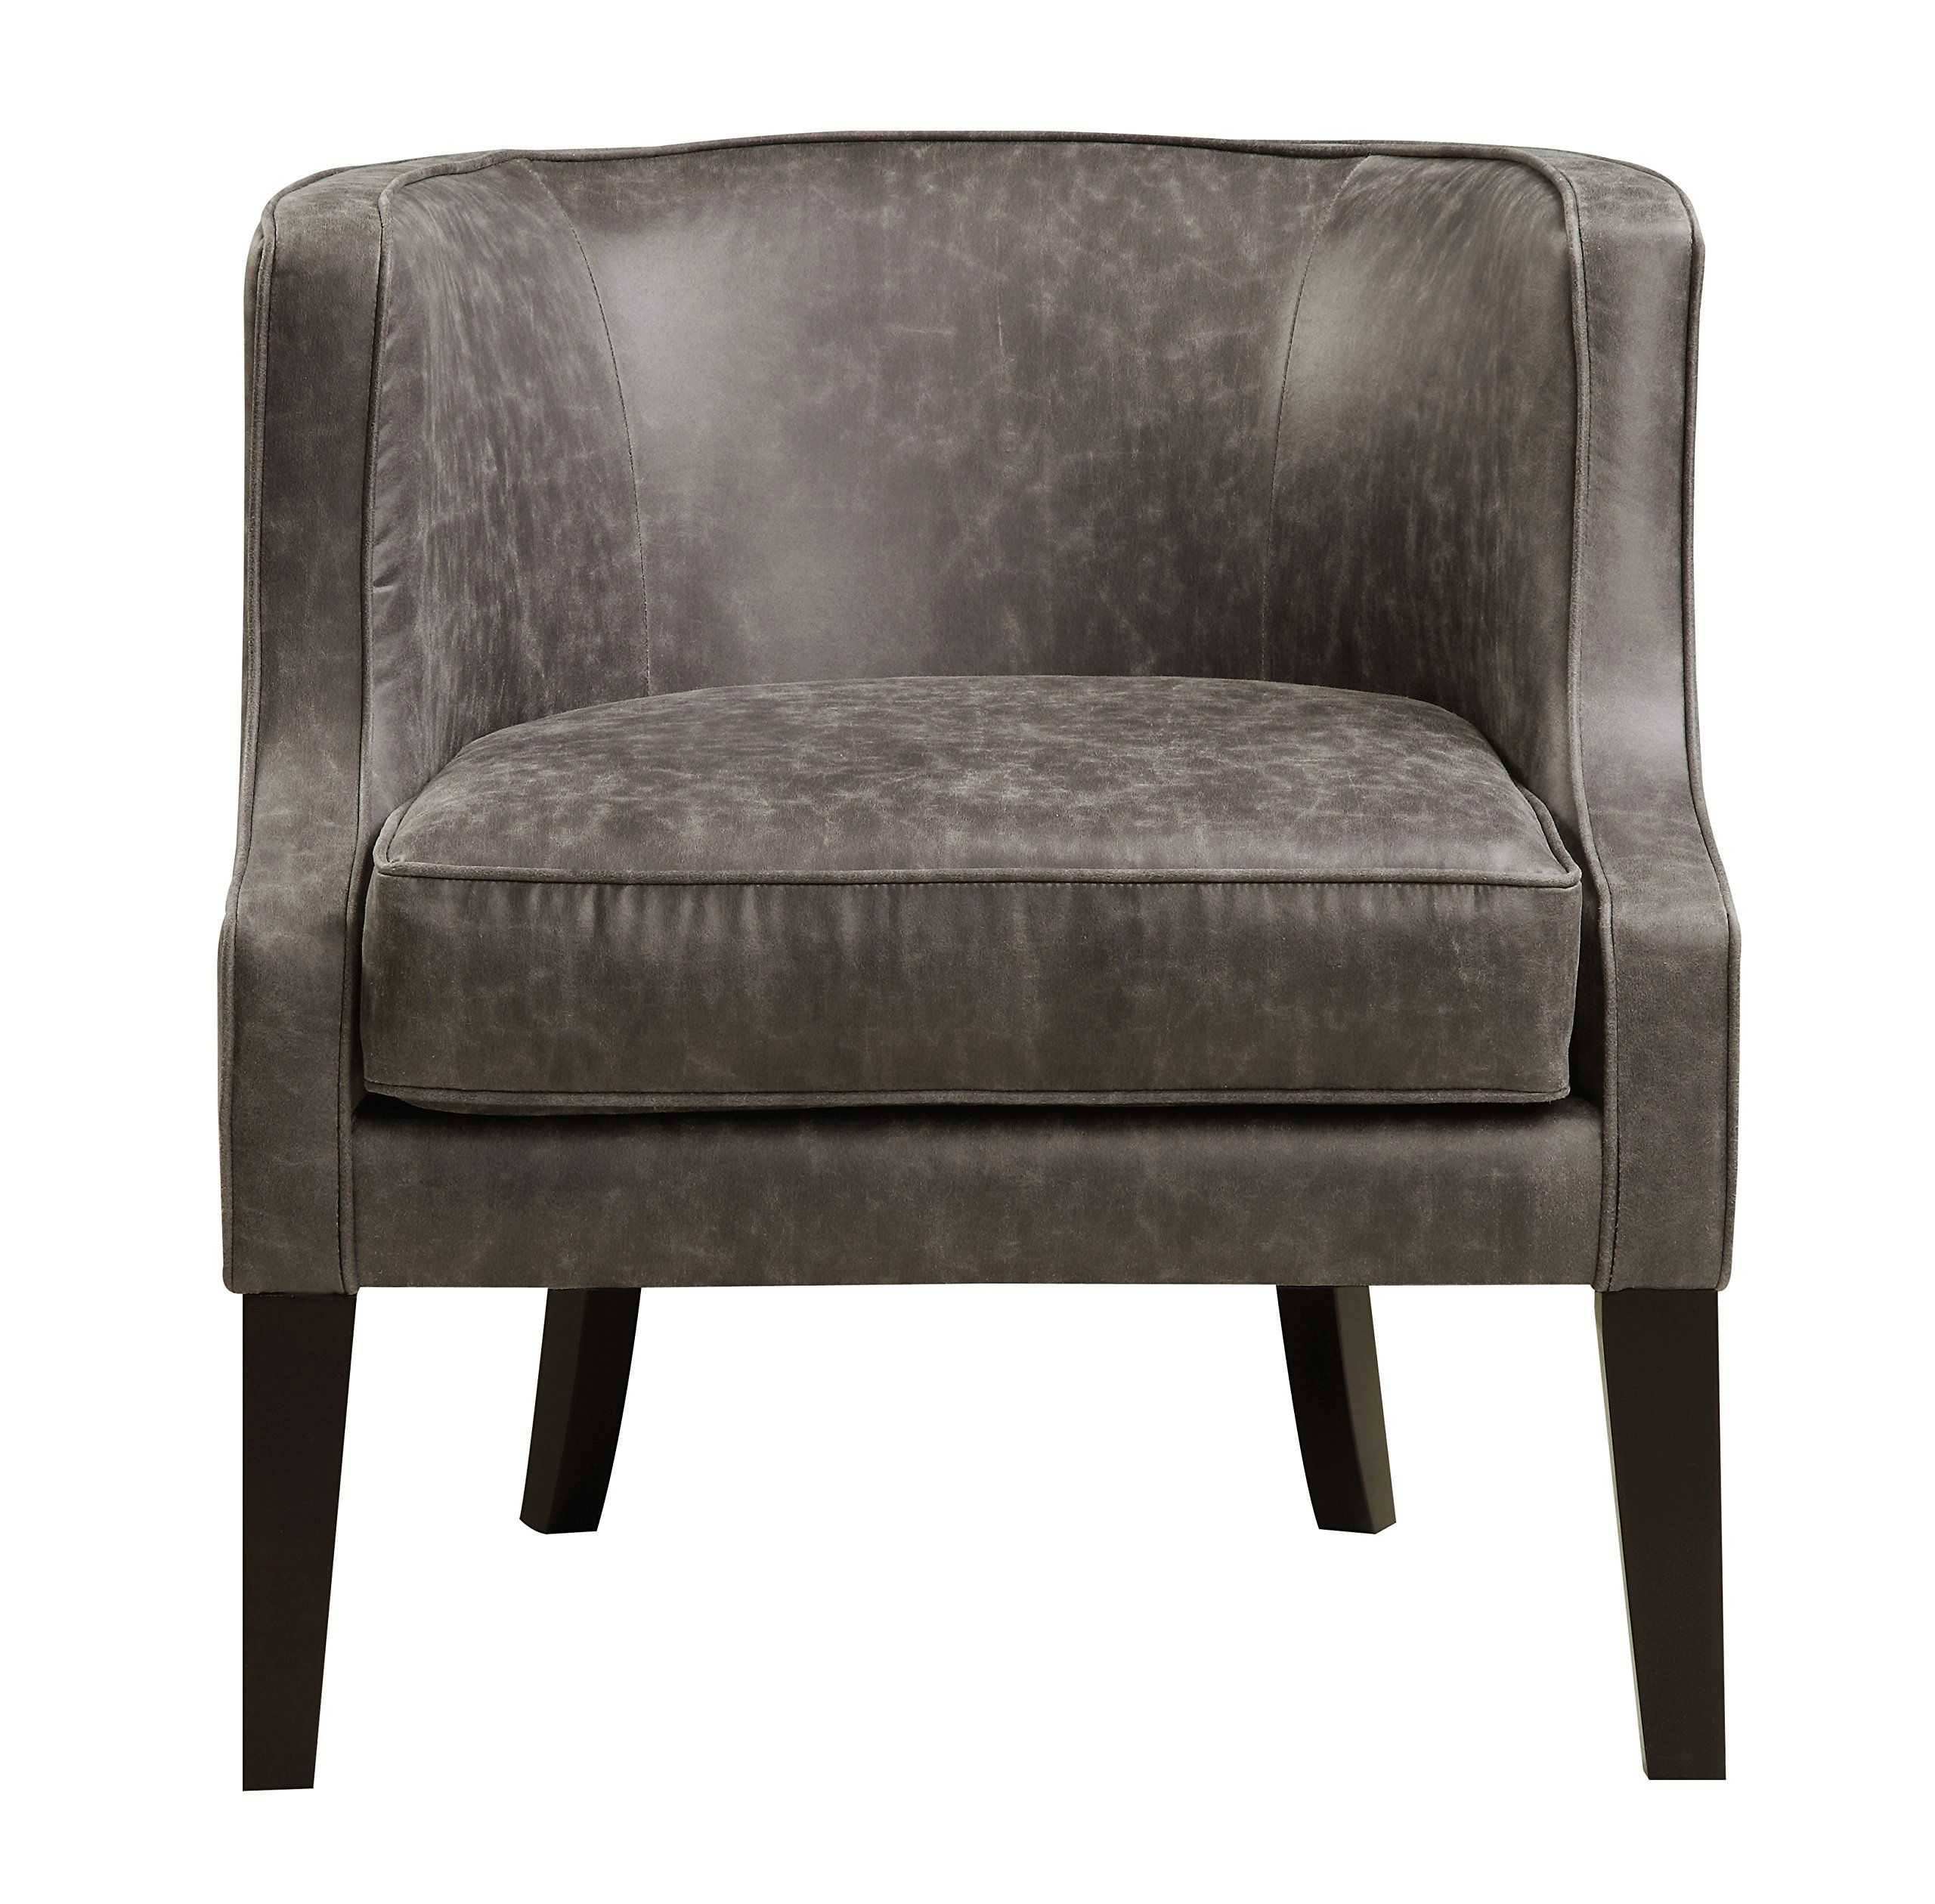 Pulaski Upholstered Barrel Accent Arm Chair Brown Pellini Thunder Leather